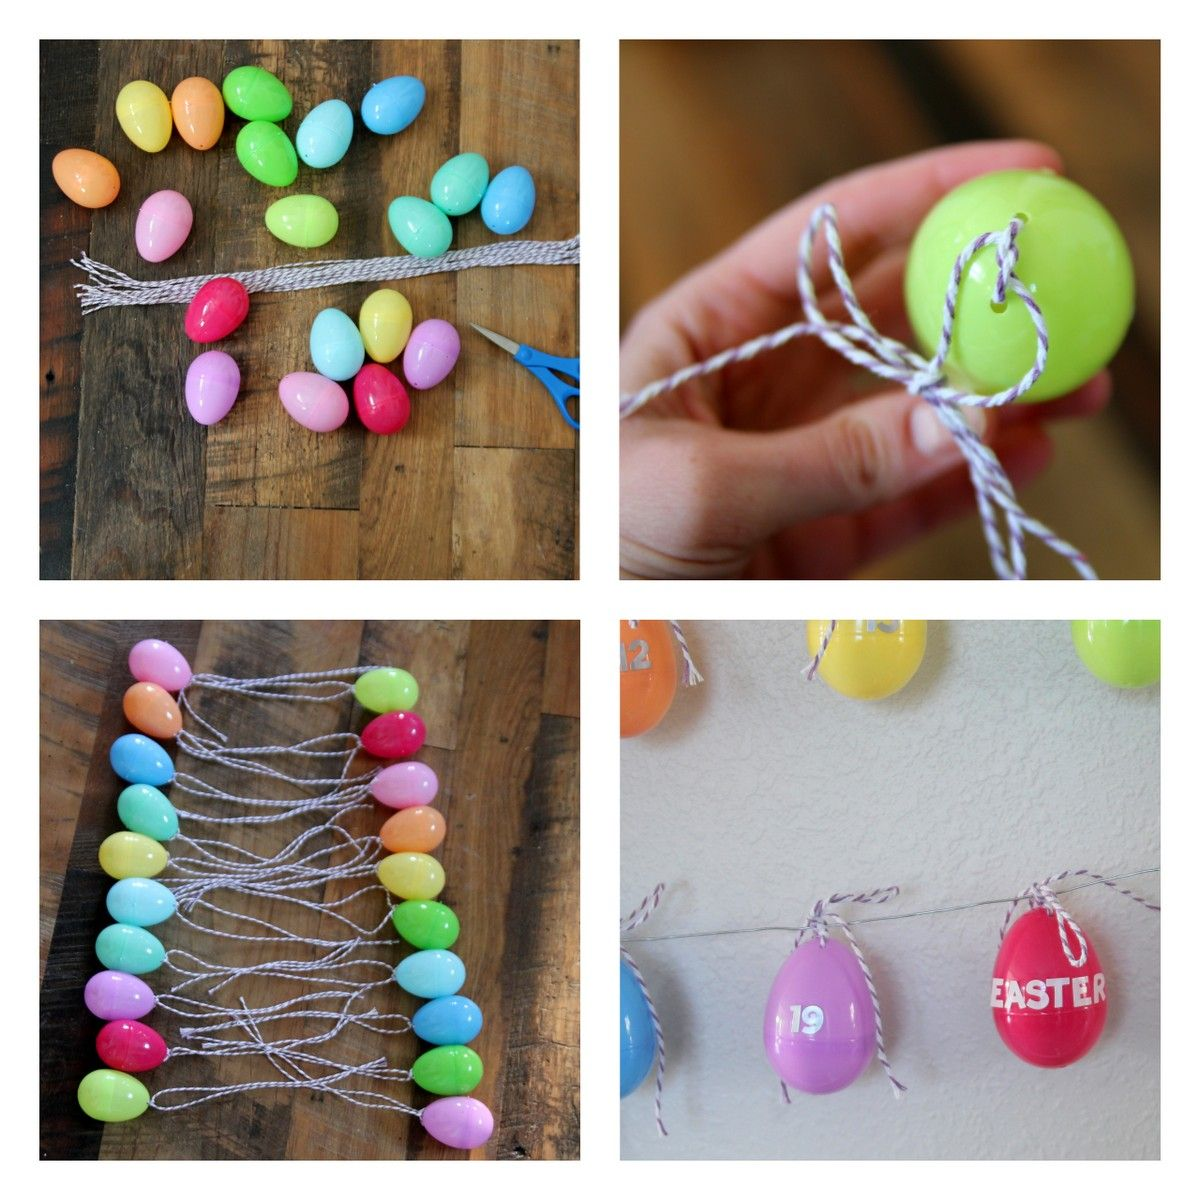 Easter Countdown With Kids Easter Activities Sweet. I